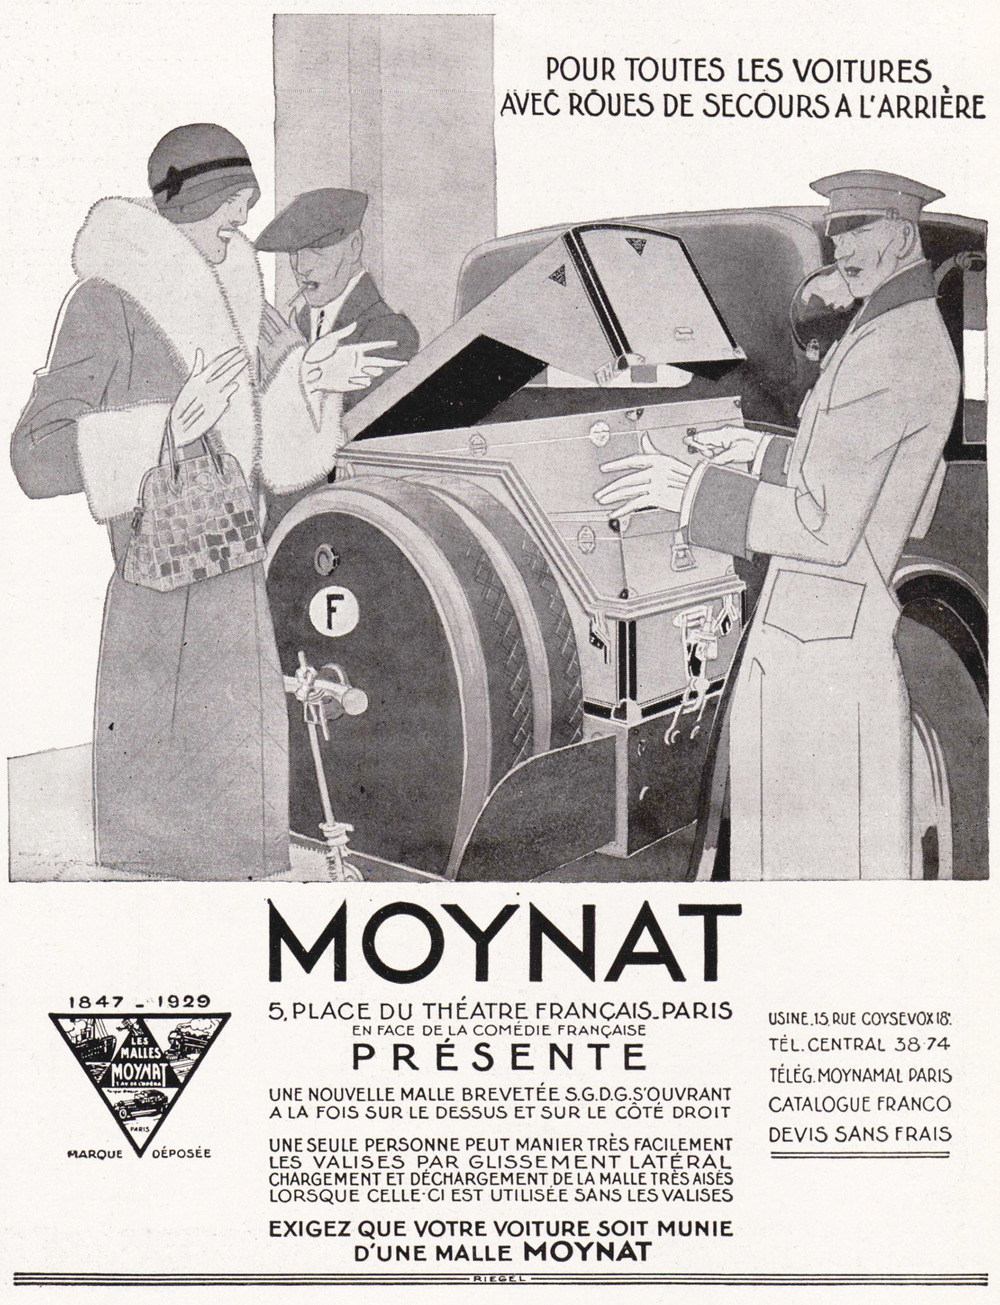 A 1929 advertisement demonstrates Moynat's innovative automobile-fitted trunks. Photos courtesy of Moynat